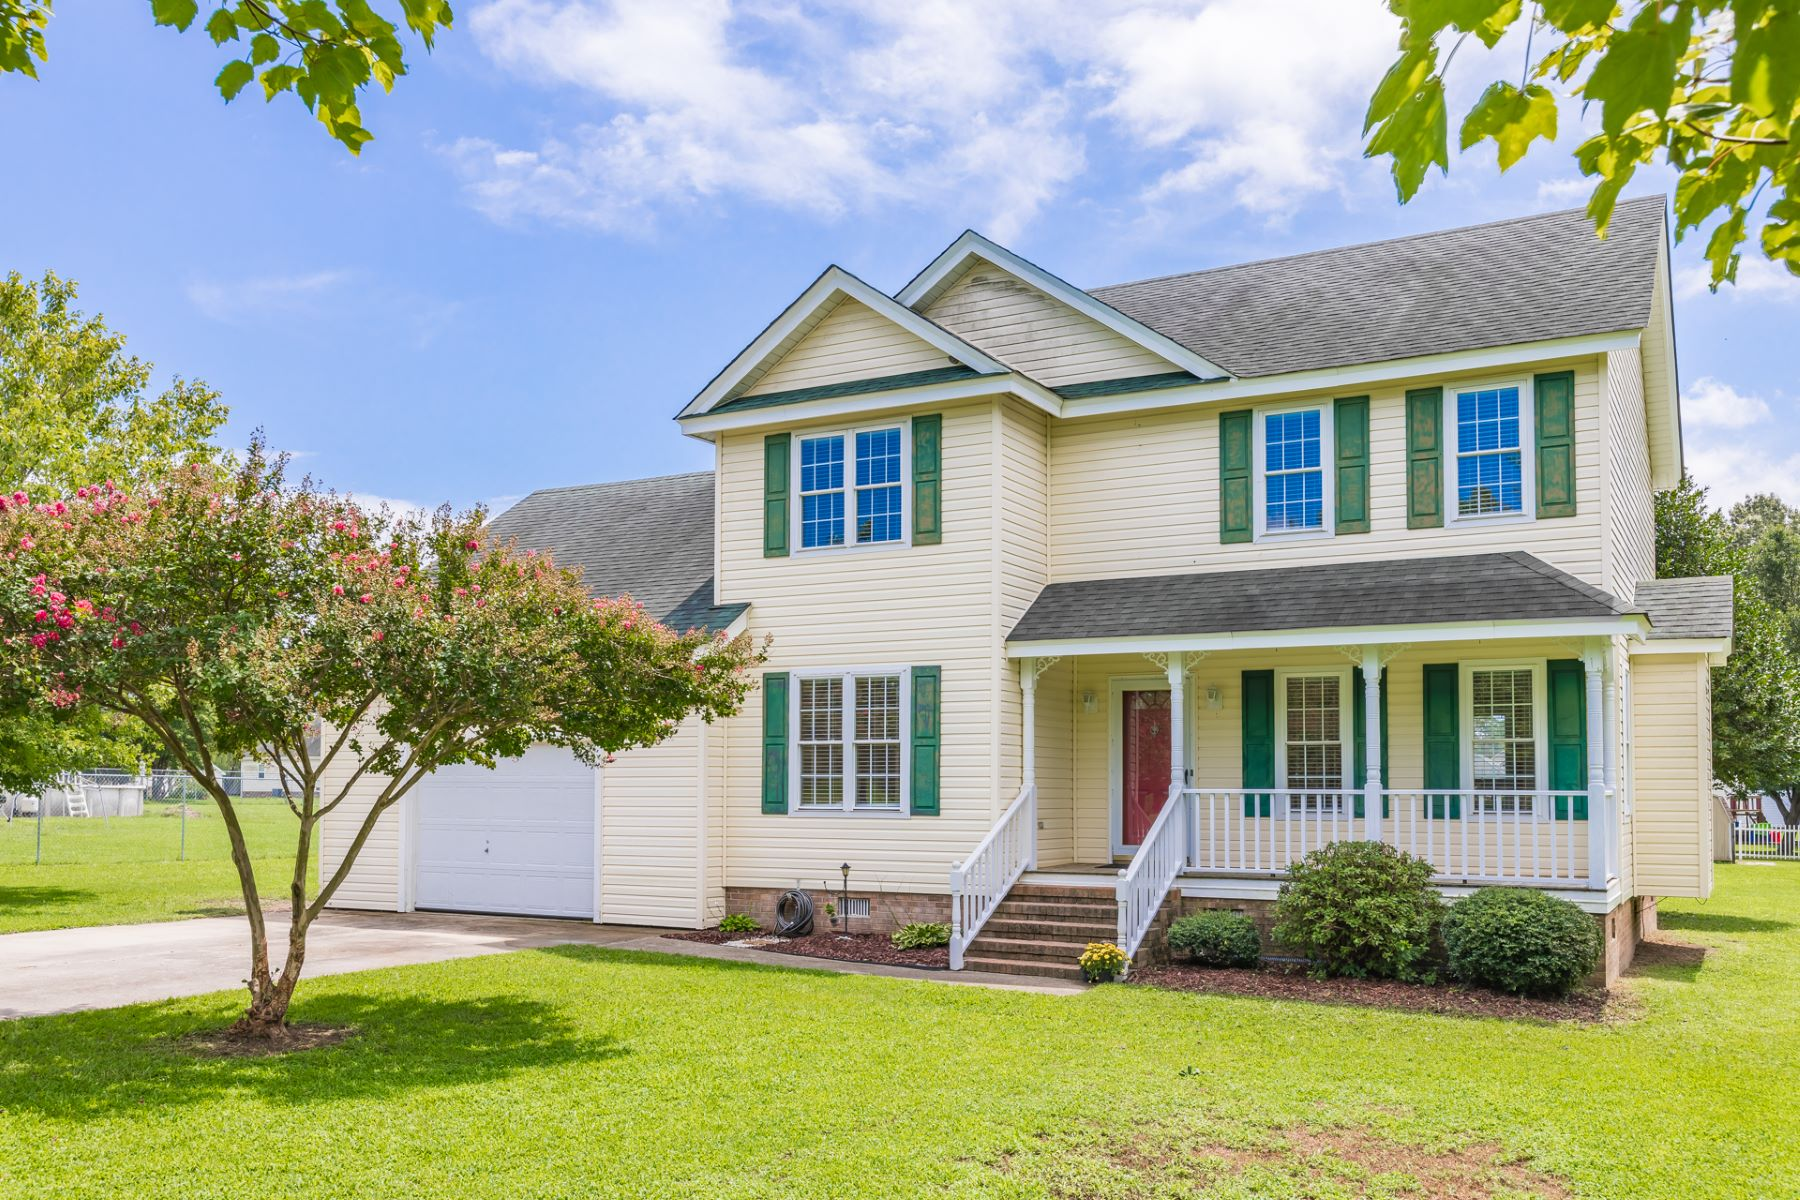 Single Family Homes for Active at BRUMSEY LANDING 144 Brumsey Road Moyock, North Carolina 27958 United States